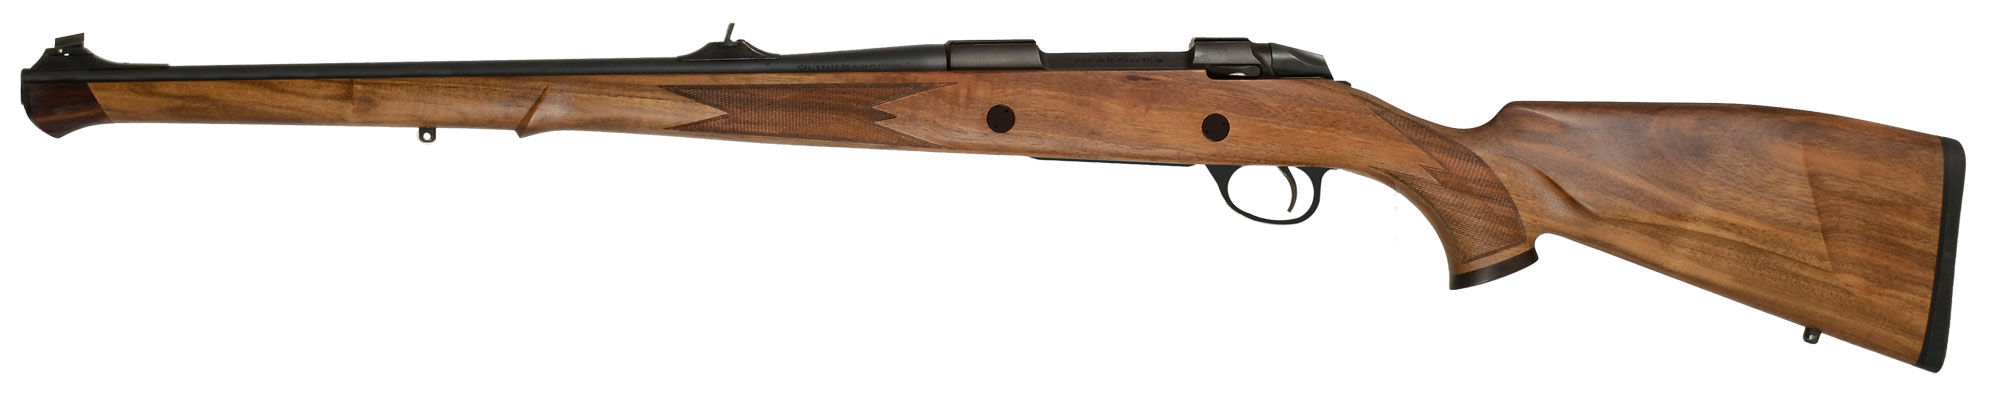 Sako Bavarian Carbine 6.5x55 Swede Rifle JRSBC51